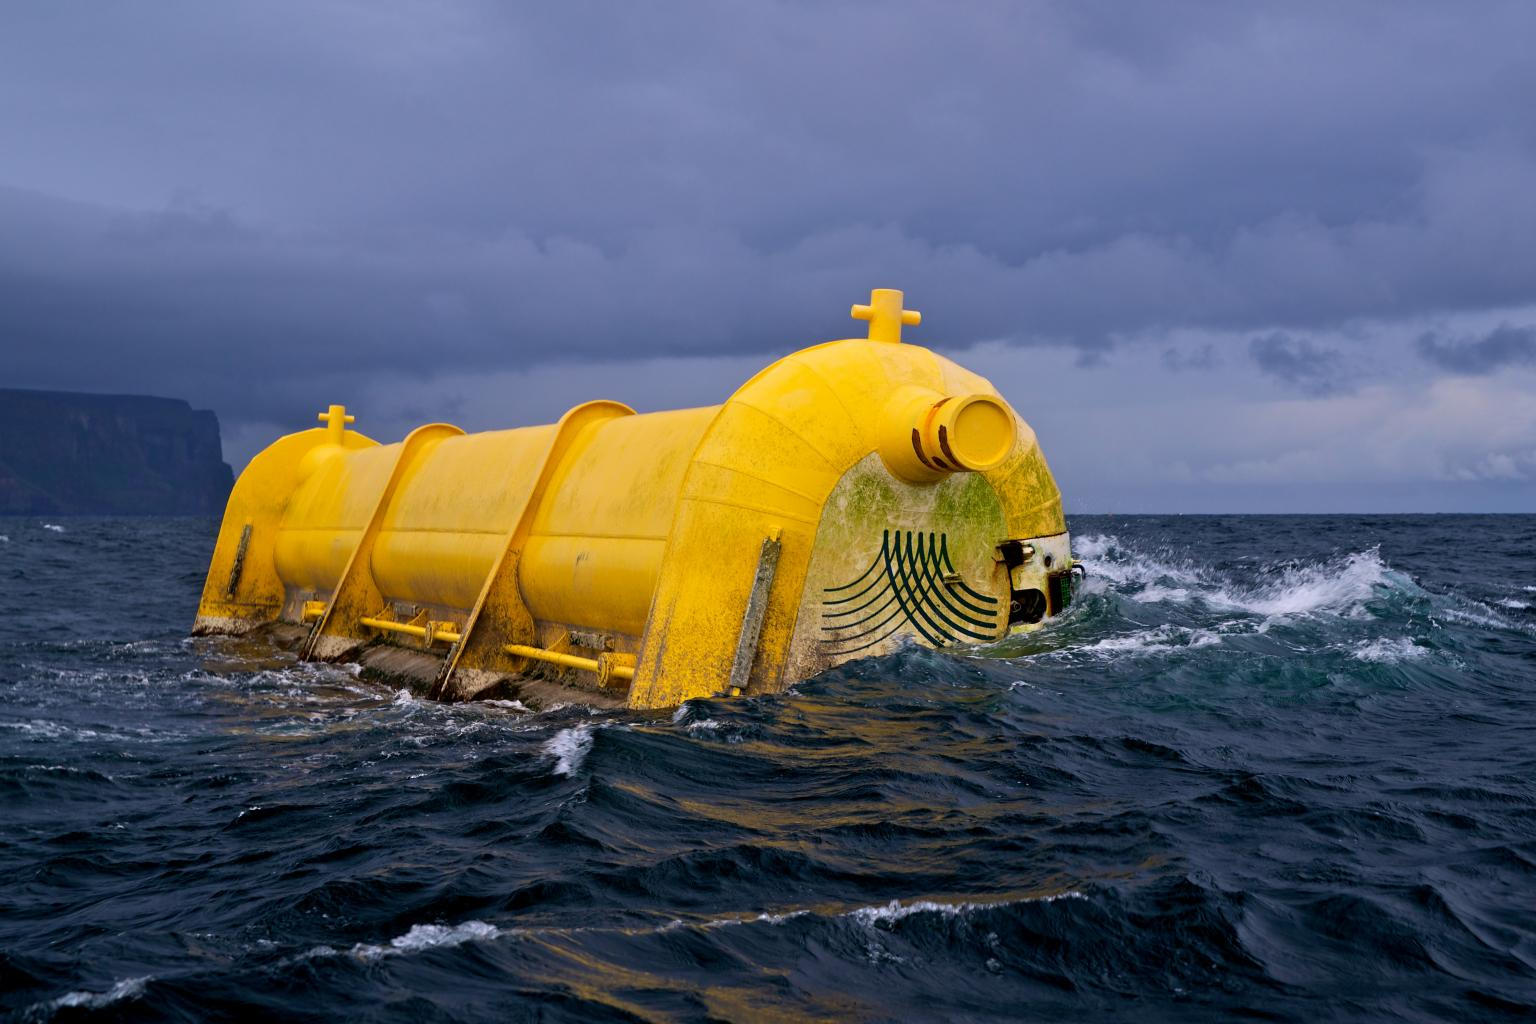 The Oyster 800 wave energy project from Aquamarine Power